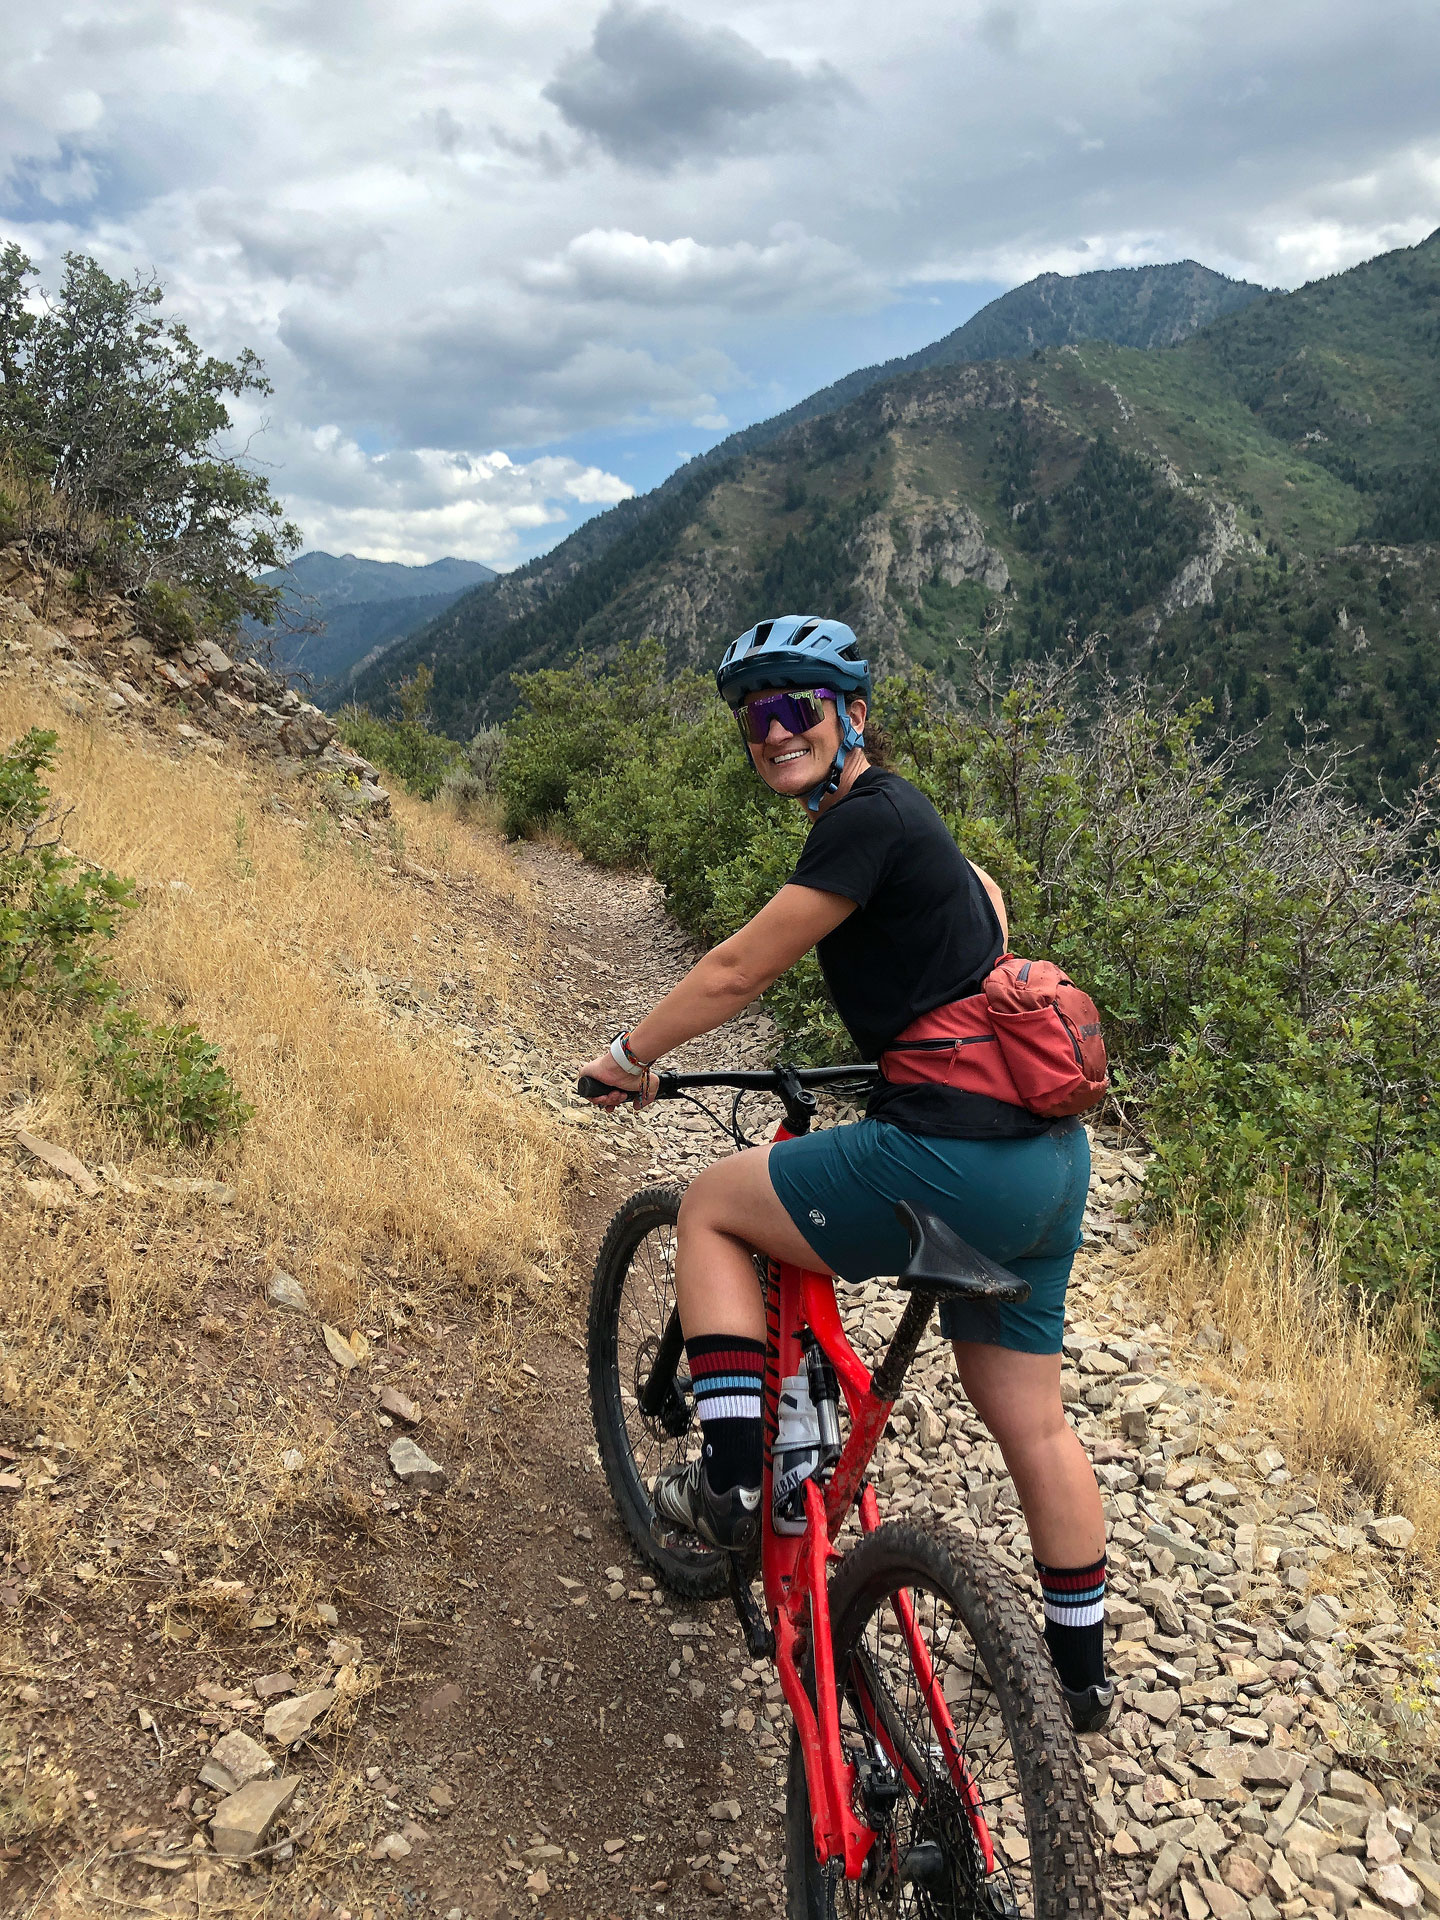 Sarah Reale looking back while sitting on a mountain bike, heading up a trail